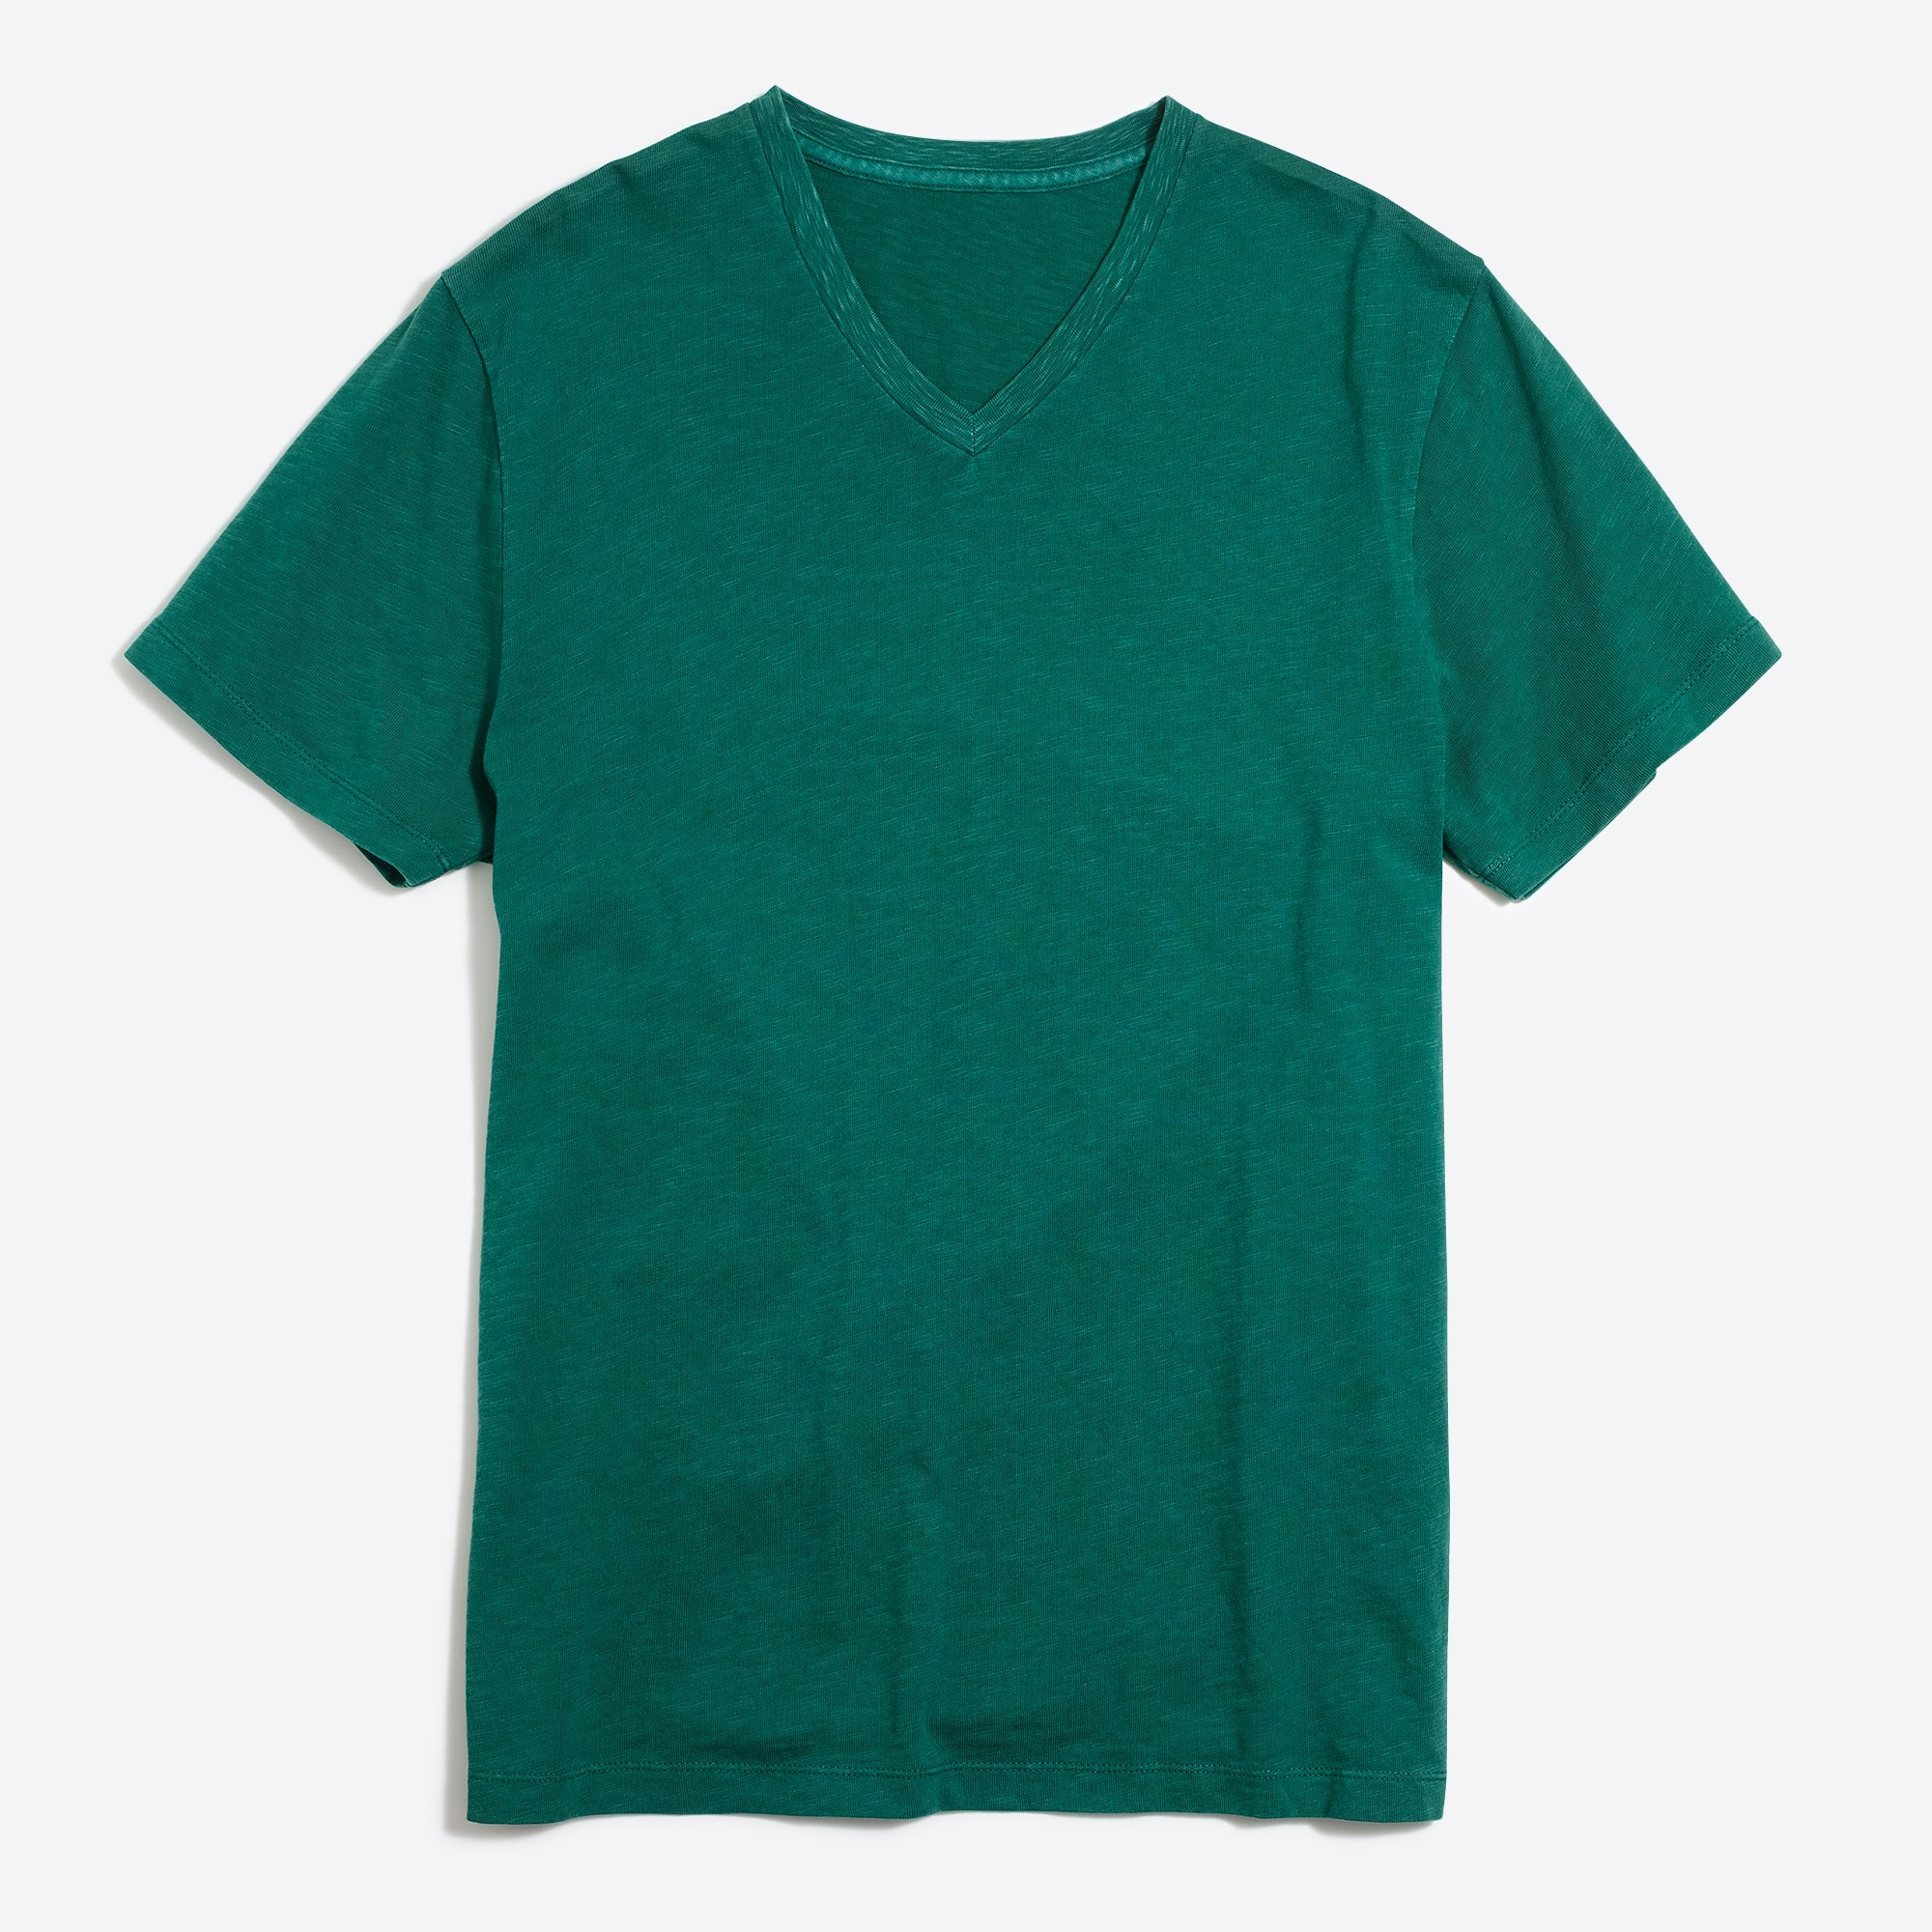 Sunwashed garment-dyed V-neck T-shirt factorymen t-shirts & henleys c